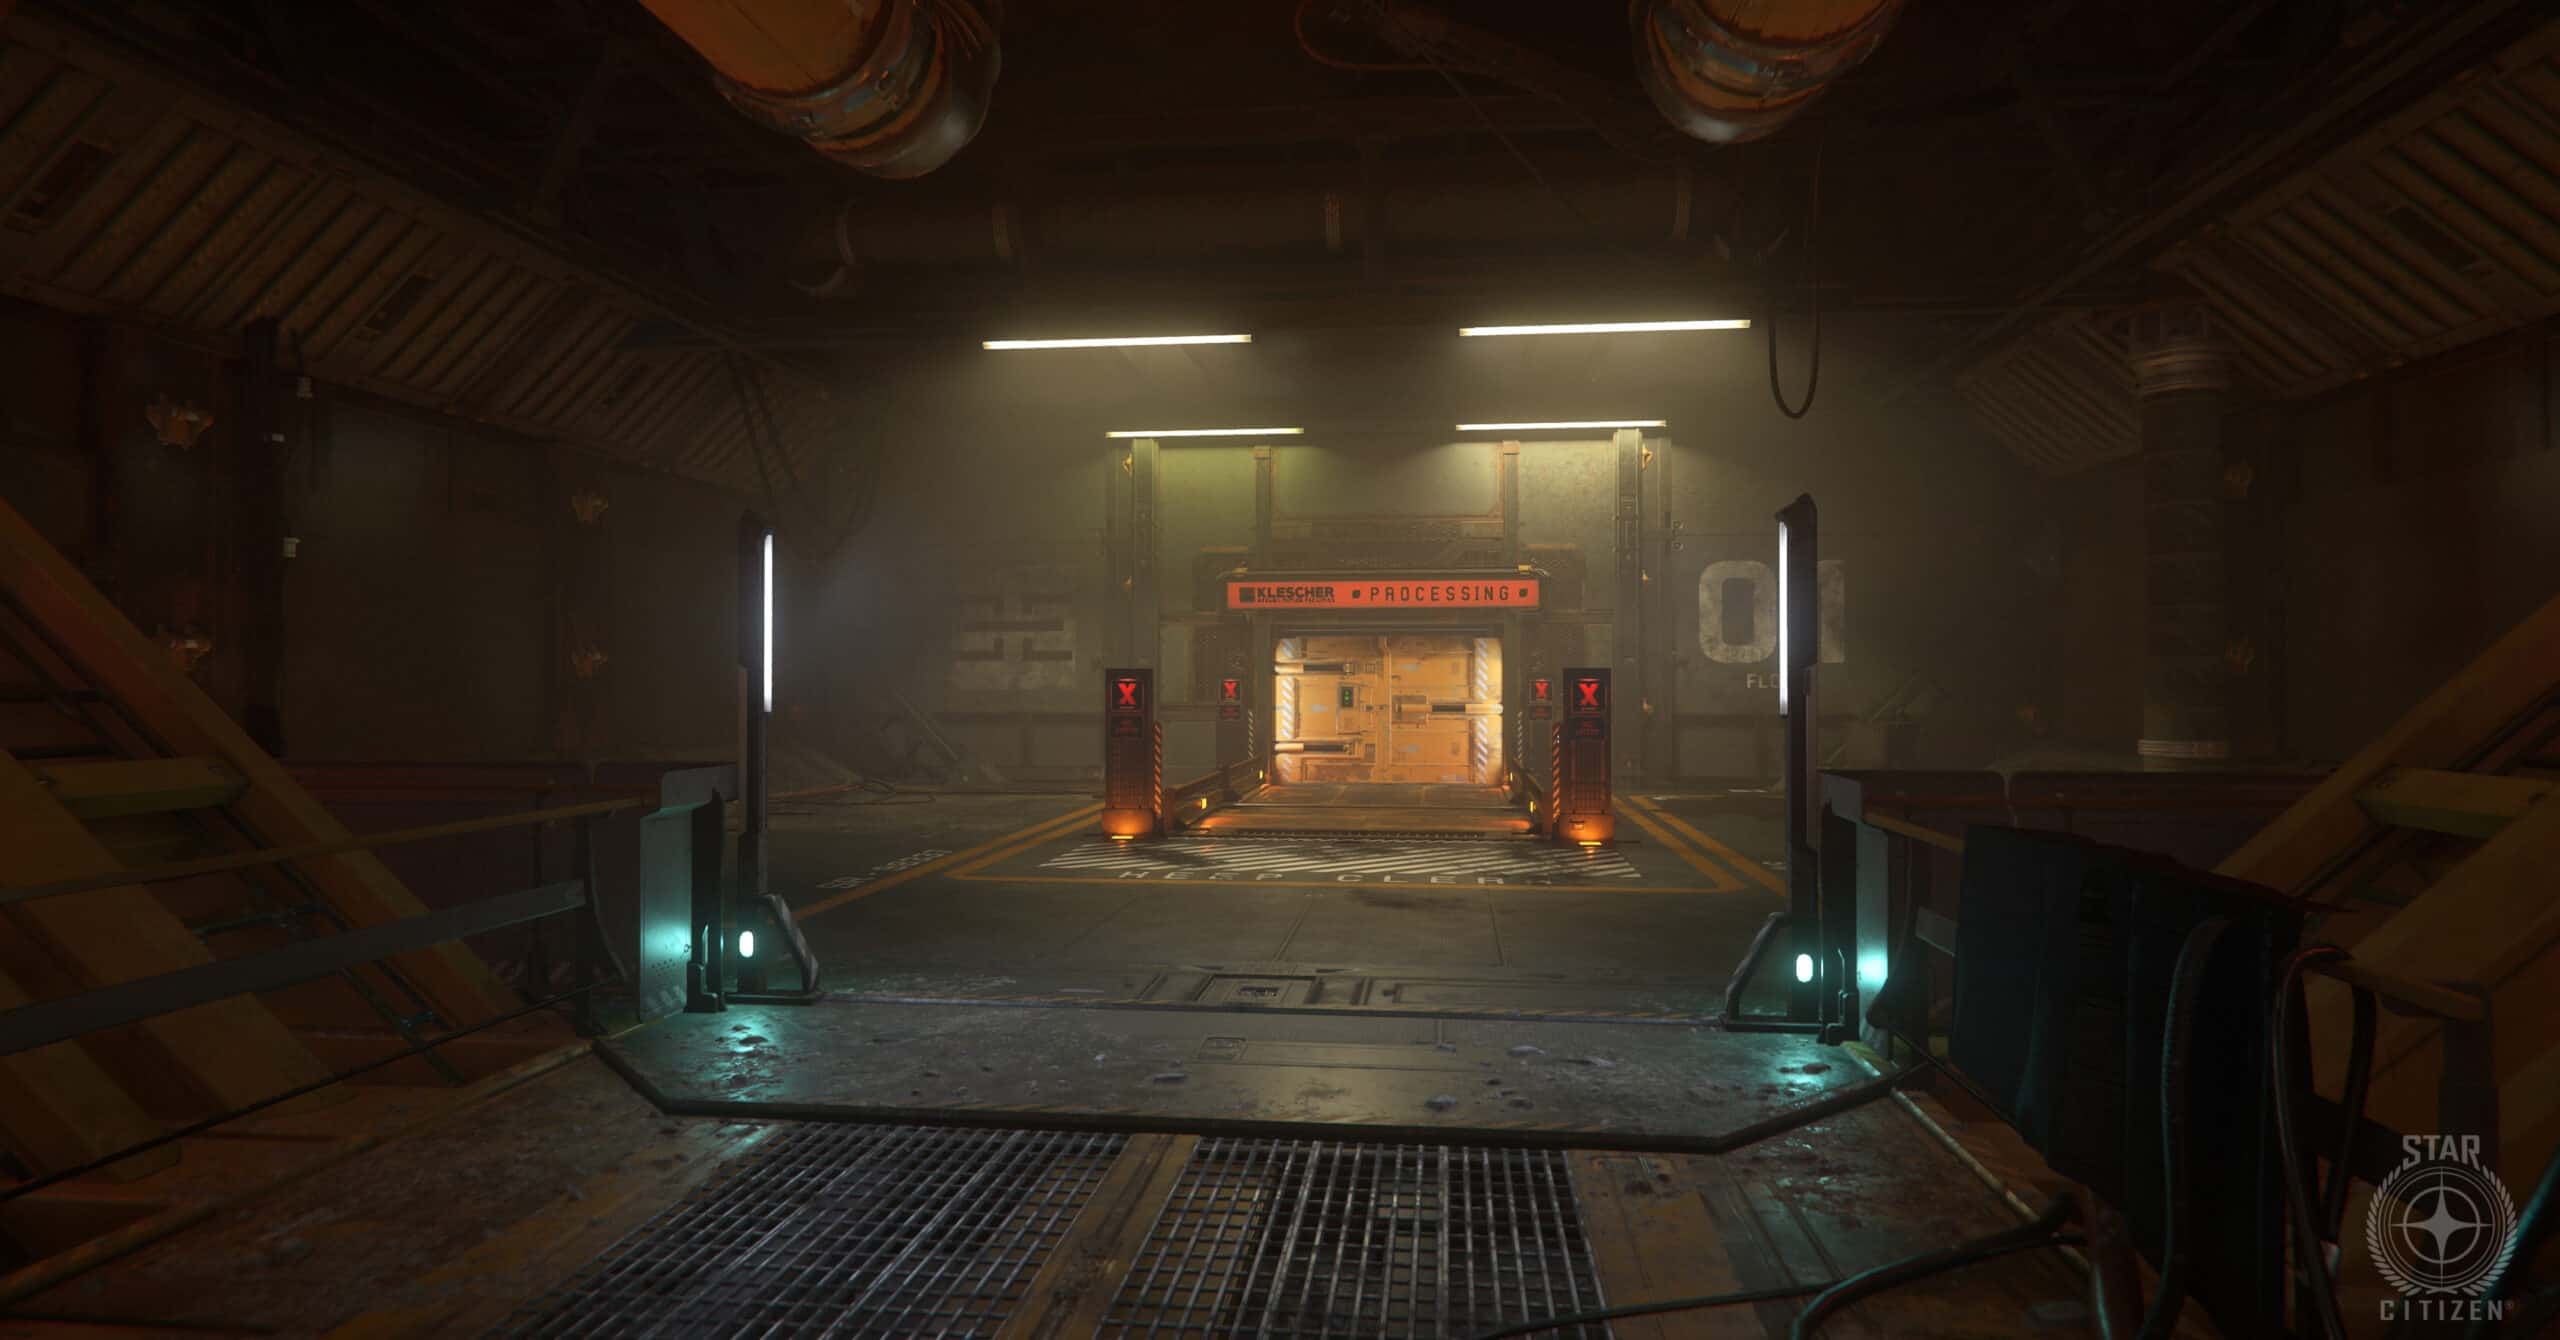 Star Citizen Monthly Report for March Looks at AI, Animations and More